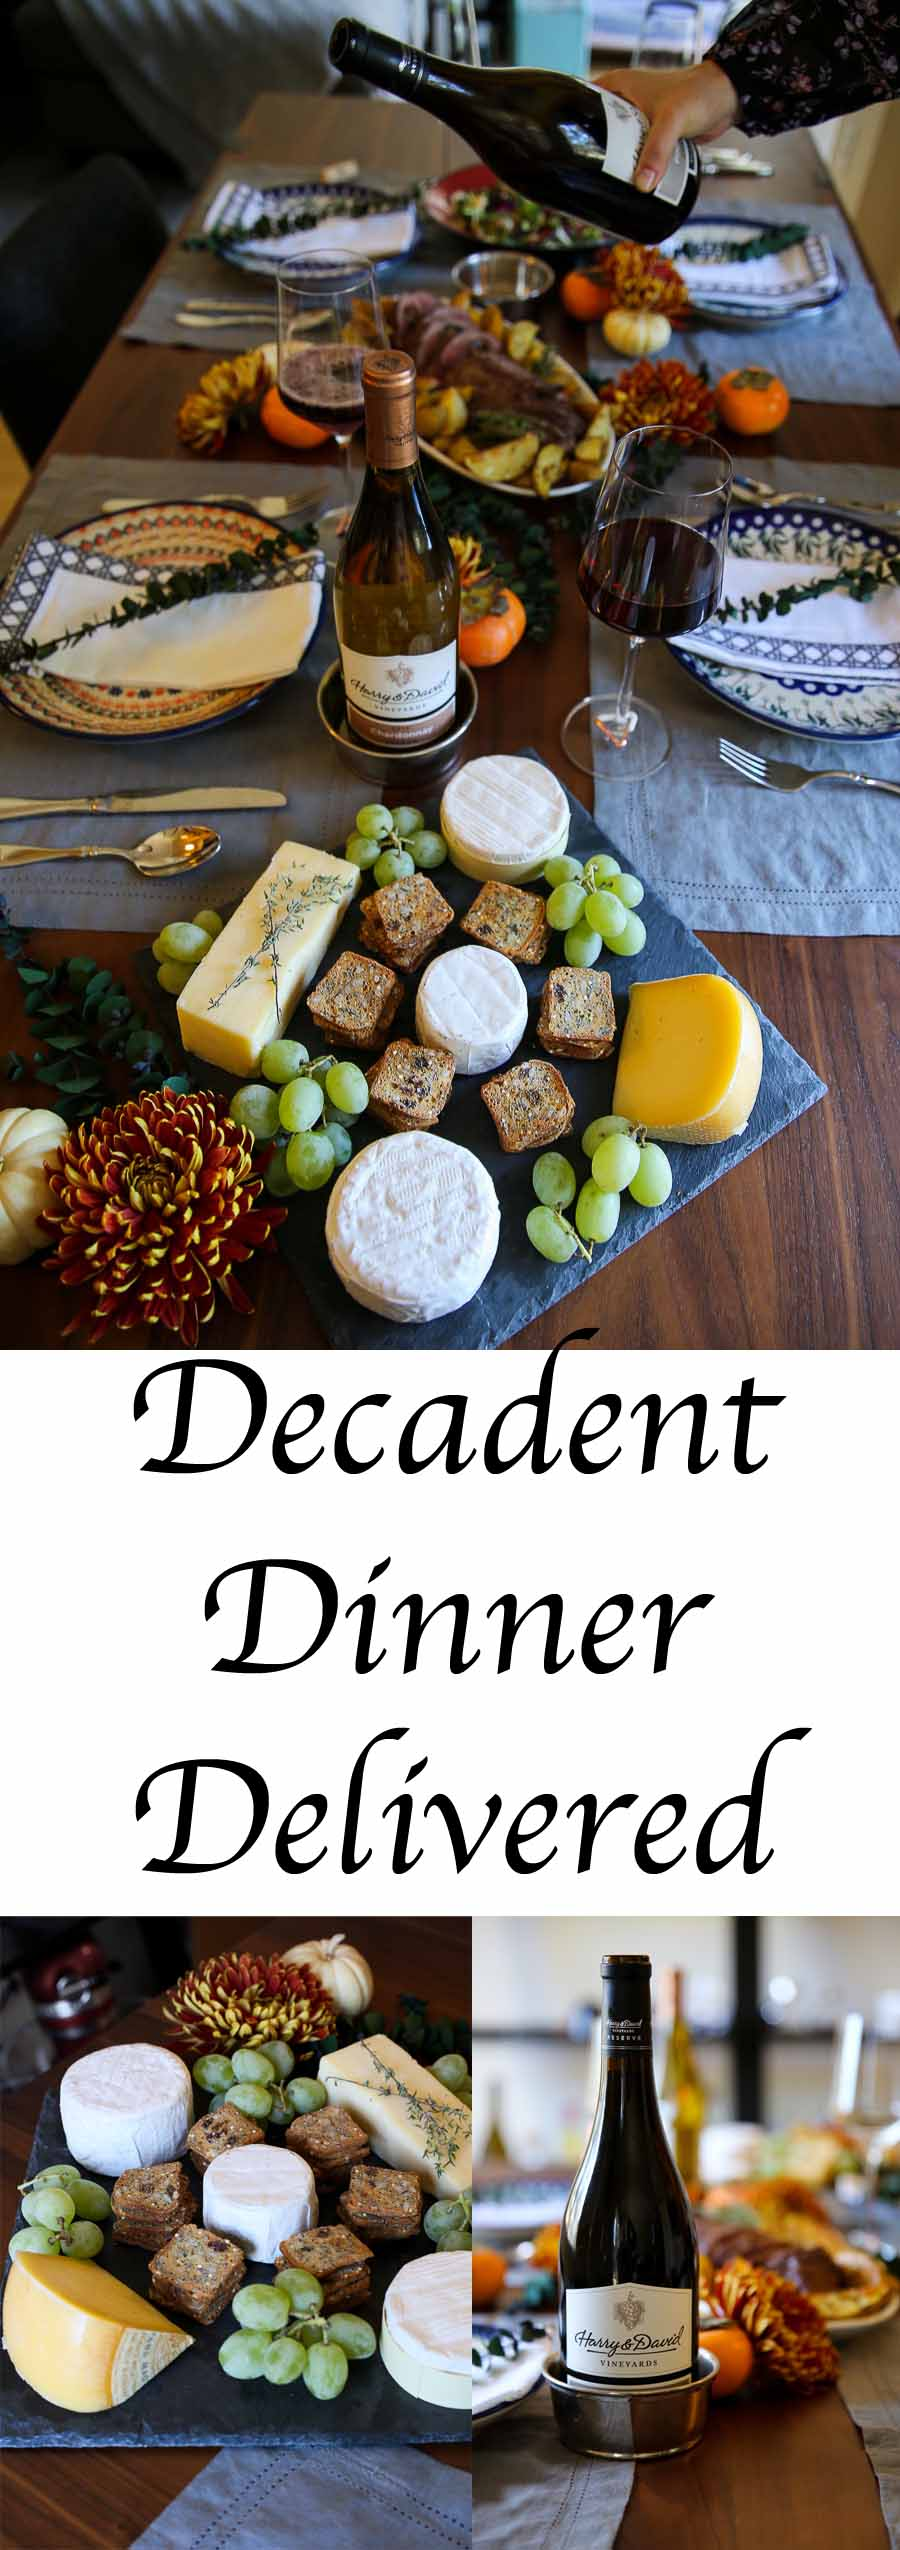 Harry & David Gourmet Dinner Delivery Review. Chateaubriand, California Cowgirl Creamery Cheese Plate, and Wine Collection. A delicious dinner for guests and to send others. #harryanddavid #chateaubriand #beed #cheese #cheeseplate #entertaining #houseguests #holidays #tablescape #falldecor #wine #entertainathome #entertain